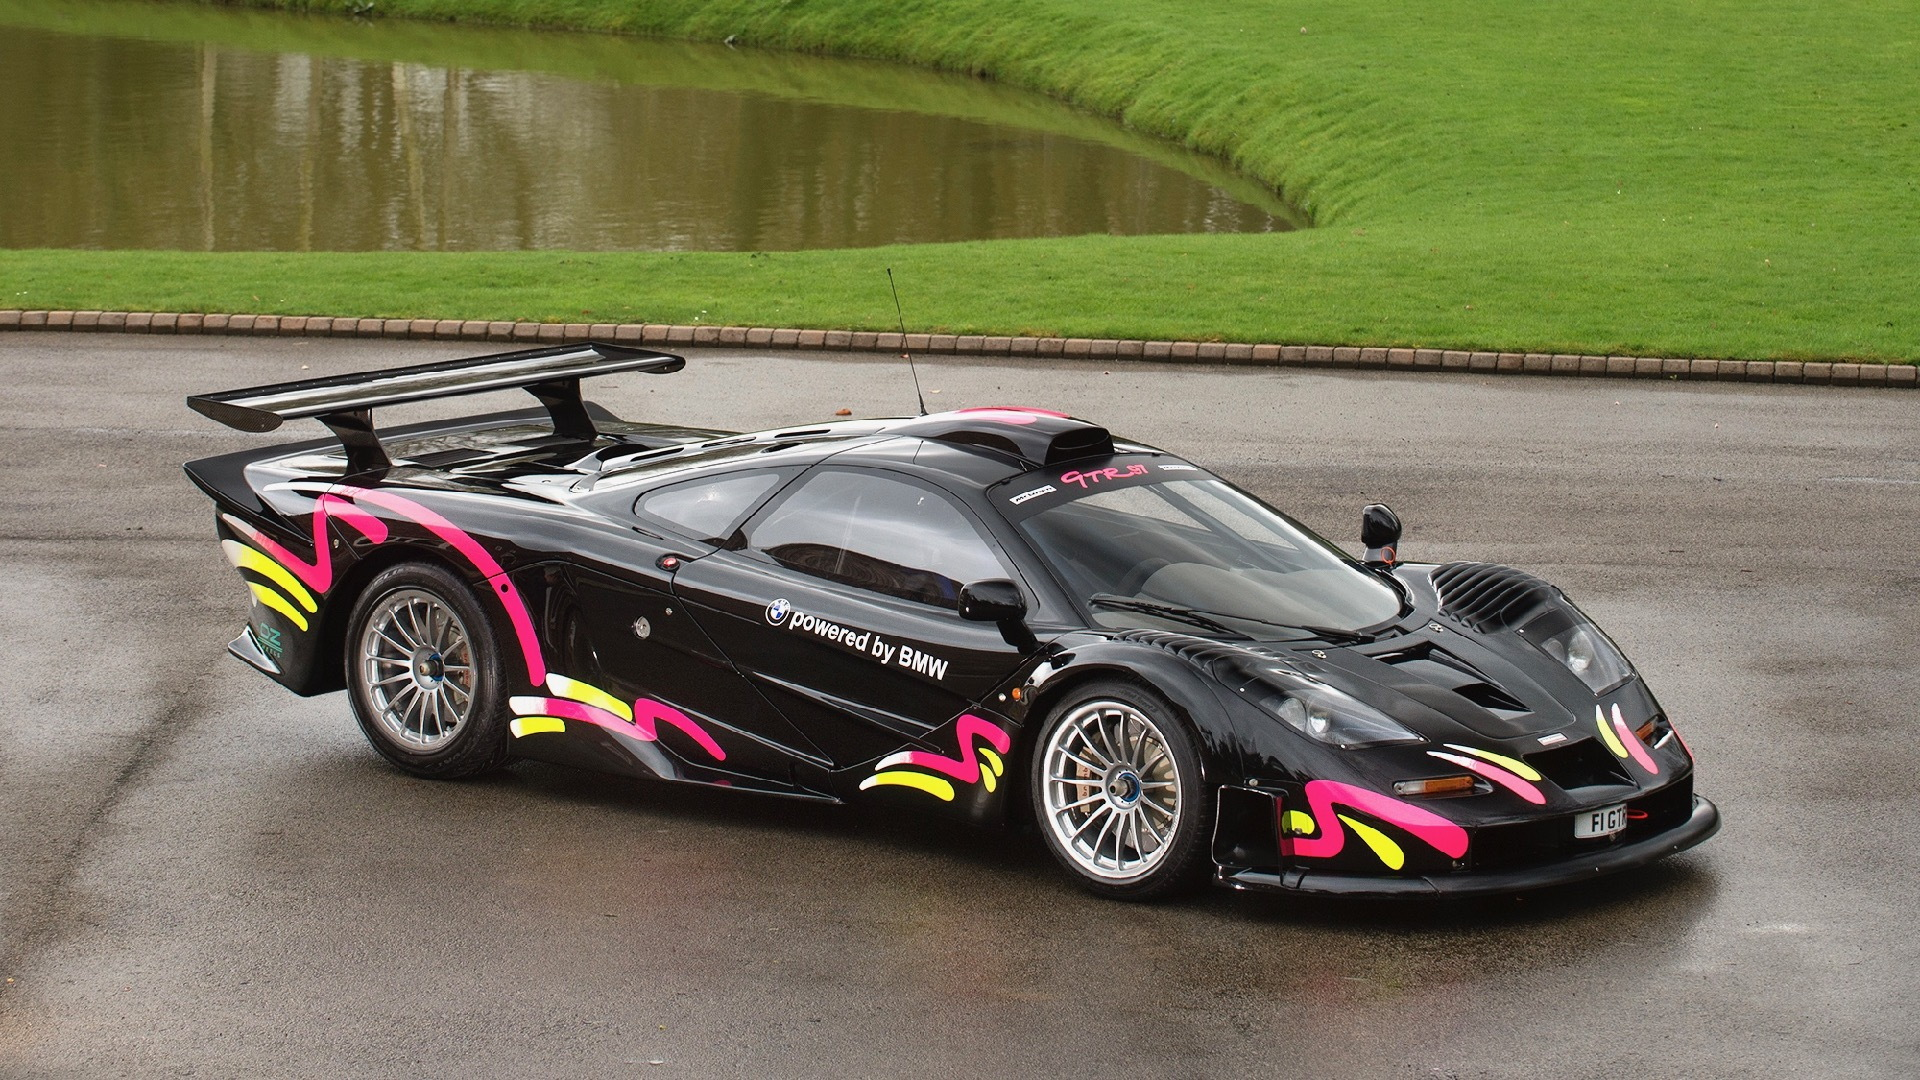 McLaren F1 GTR Longtail for sale (Photo by Tom Hartley Jnr.)